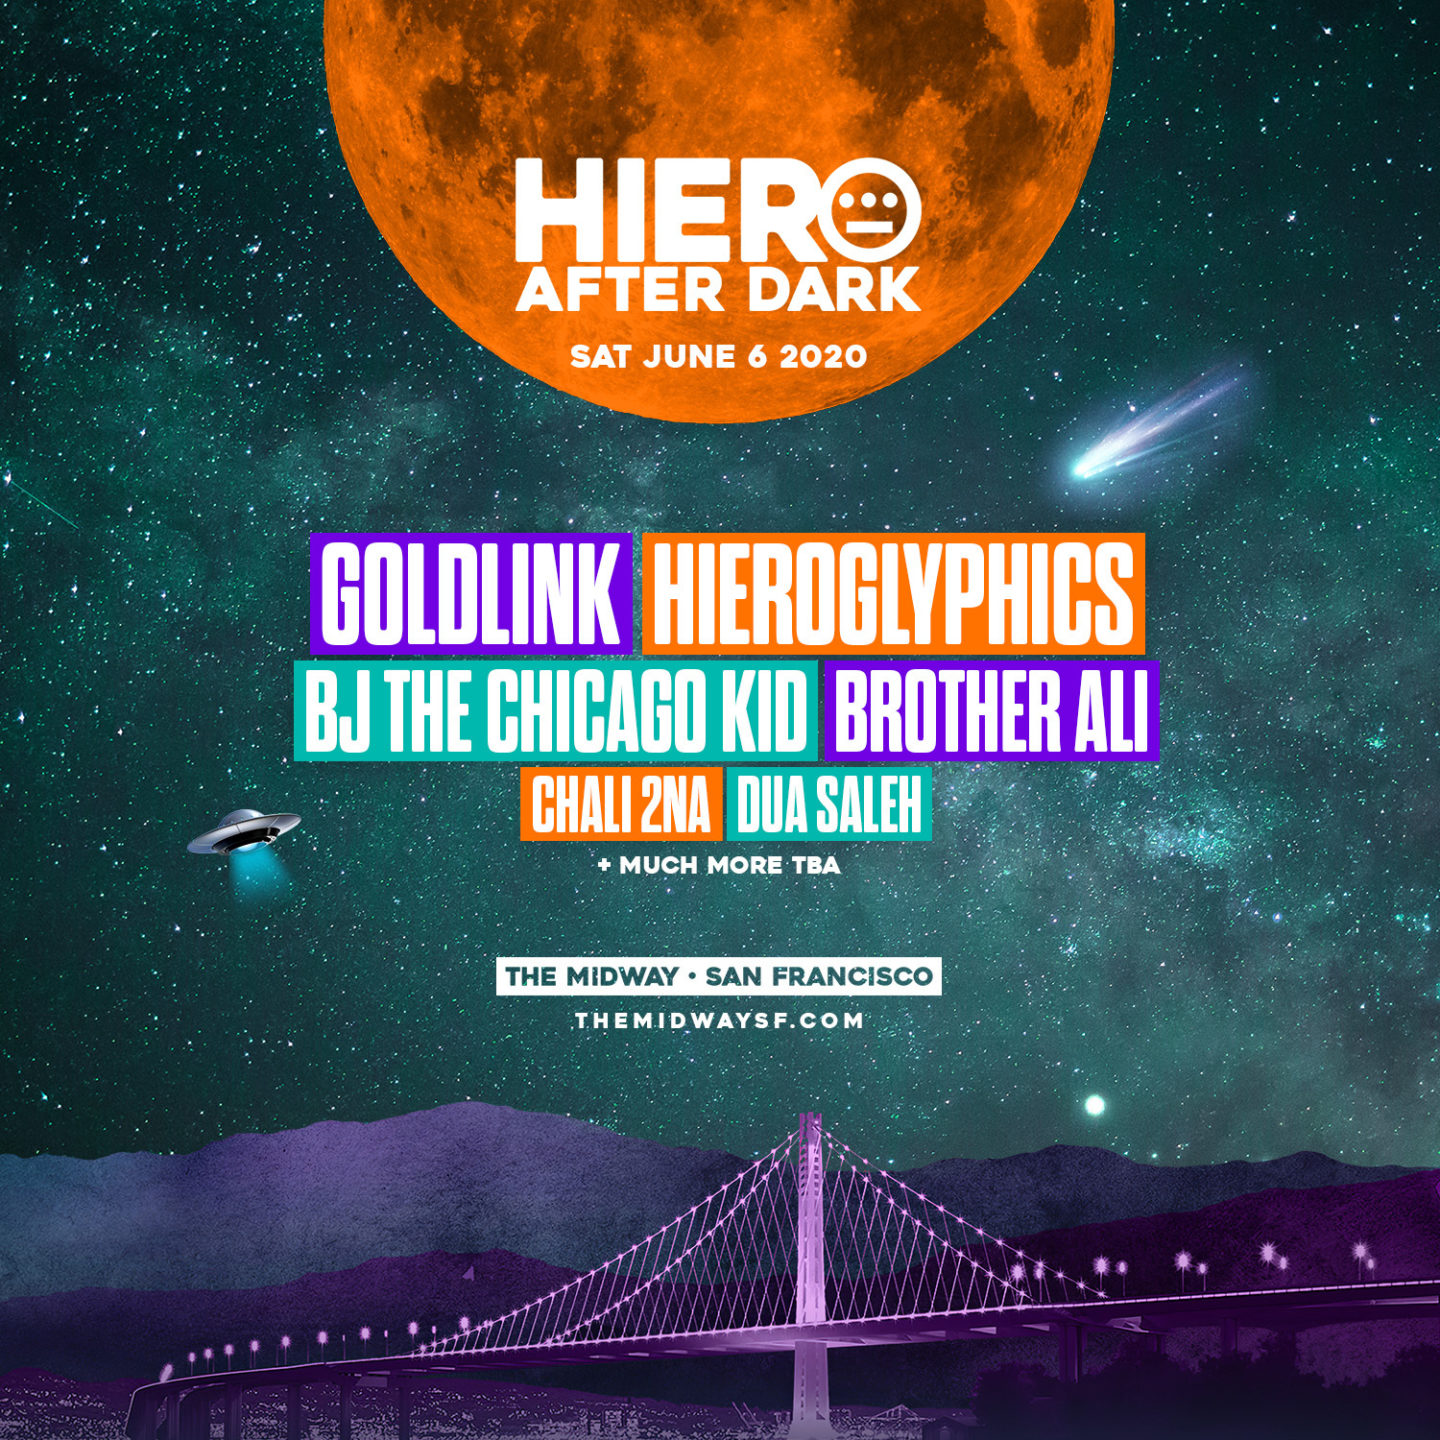 Hiero After Dark 2020 2 1